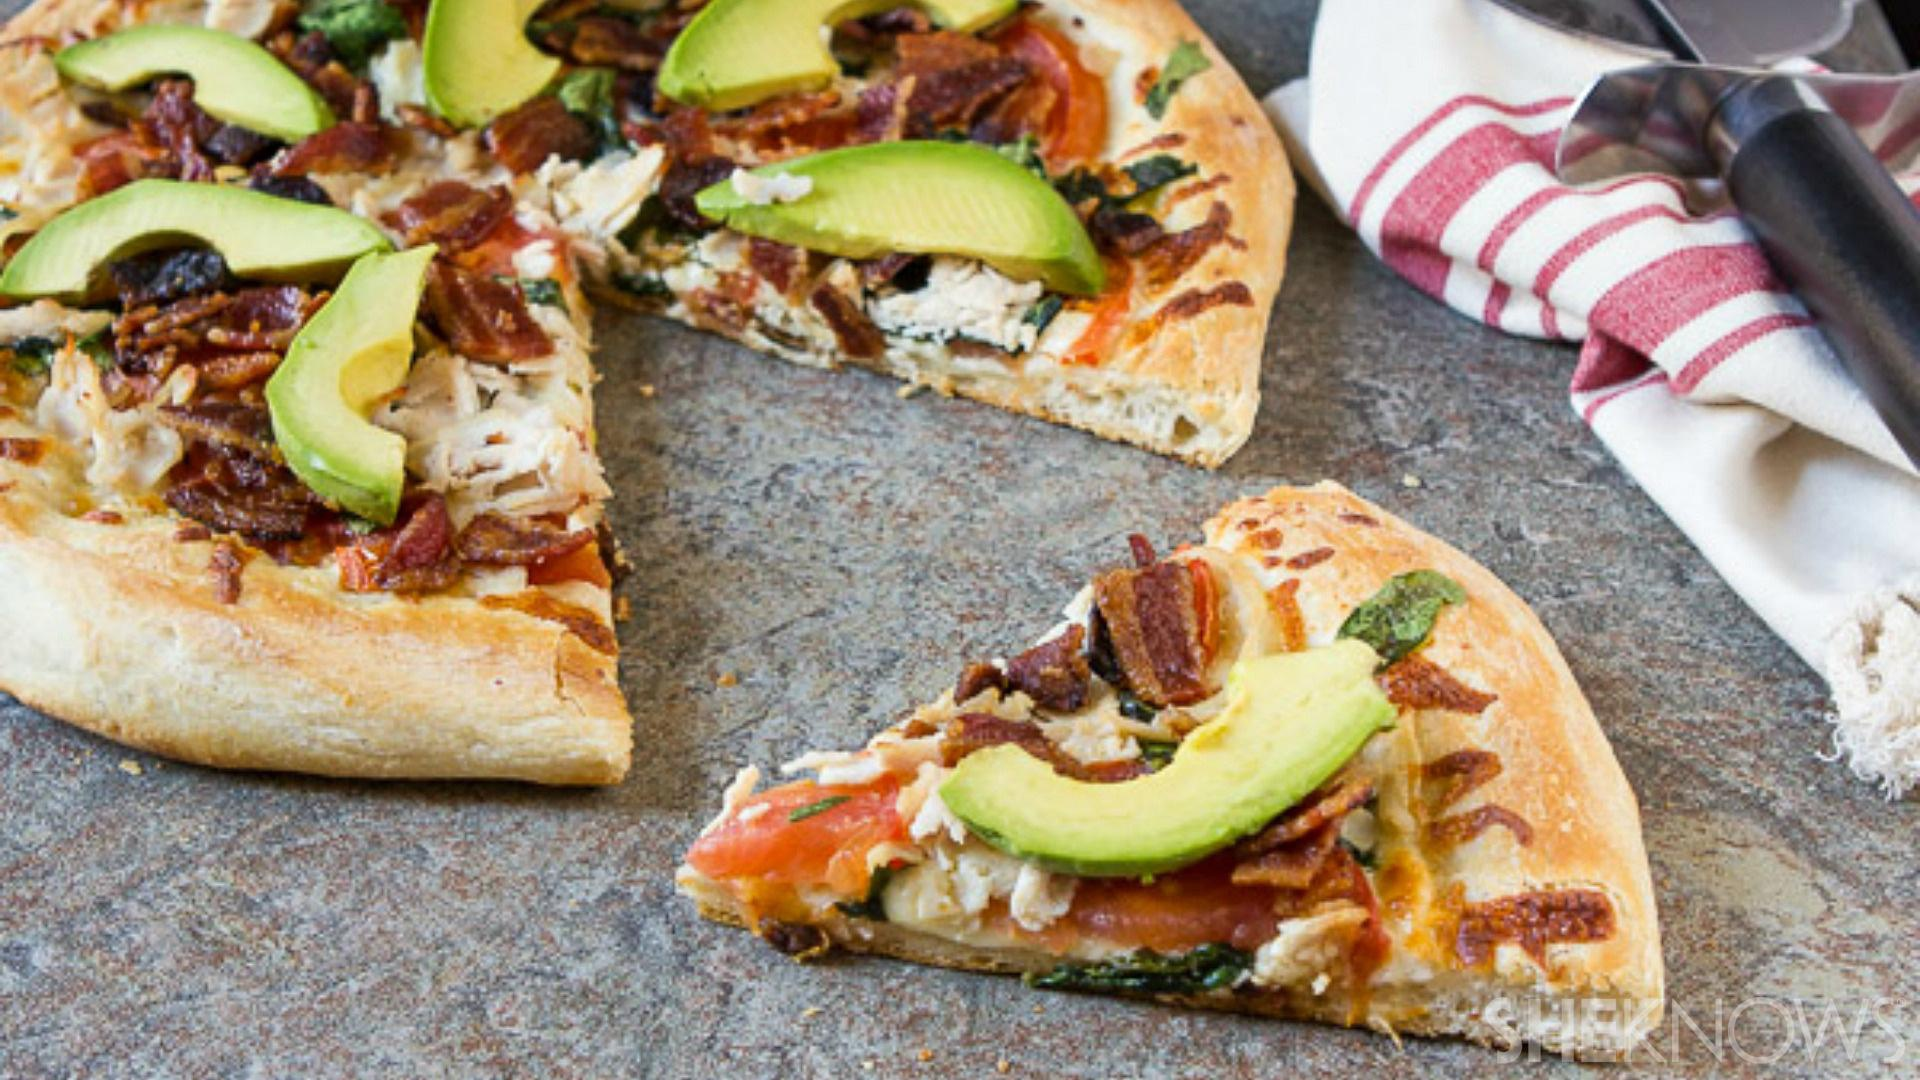 The California club pizza: your favorite sandwich transformed